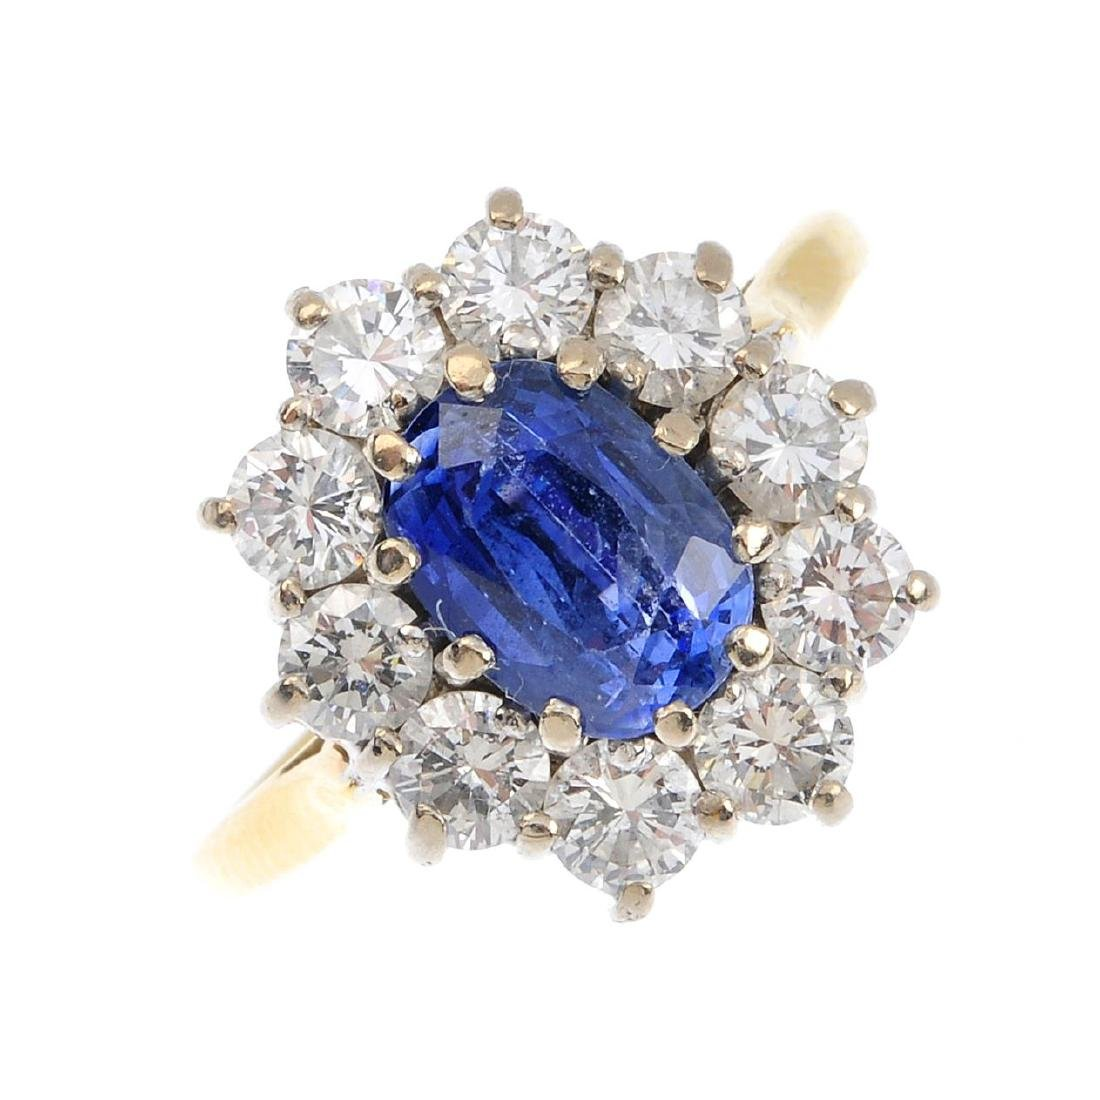 An 18ct gold diamond and sapphire cluster ring. The